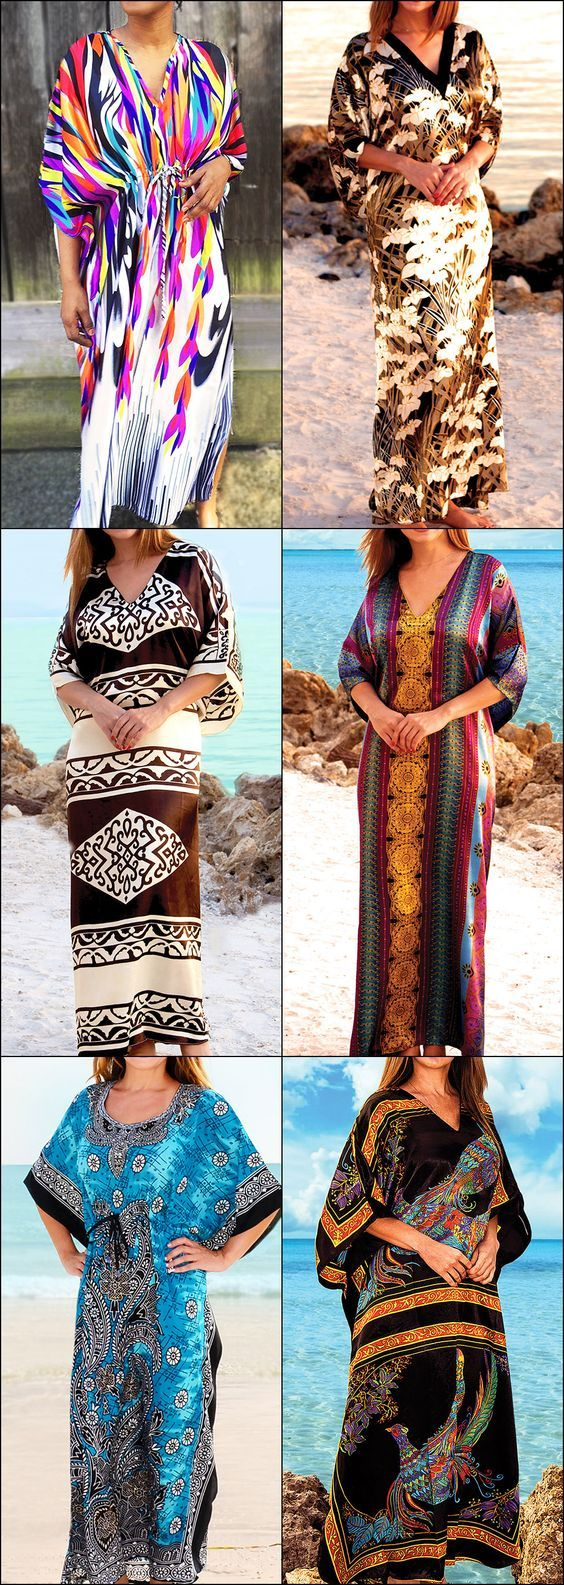 Gorgeous Caftan Dresses 65% off retail price! So many patterns to choose from, NEW for 2018! These silky Caftans are both breezy and comfortable, perfect for the beach or lounging around your house!